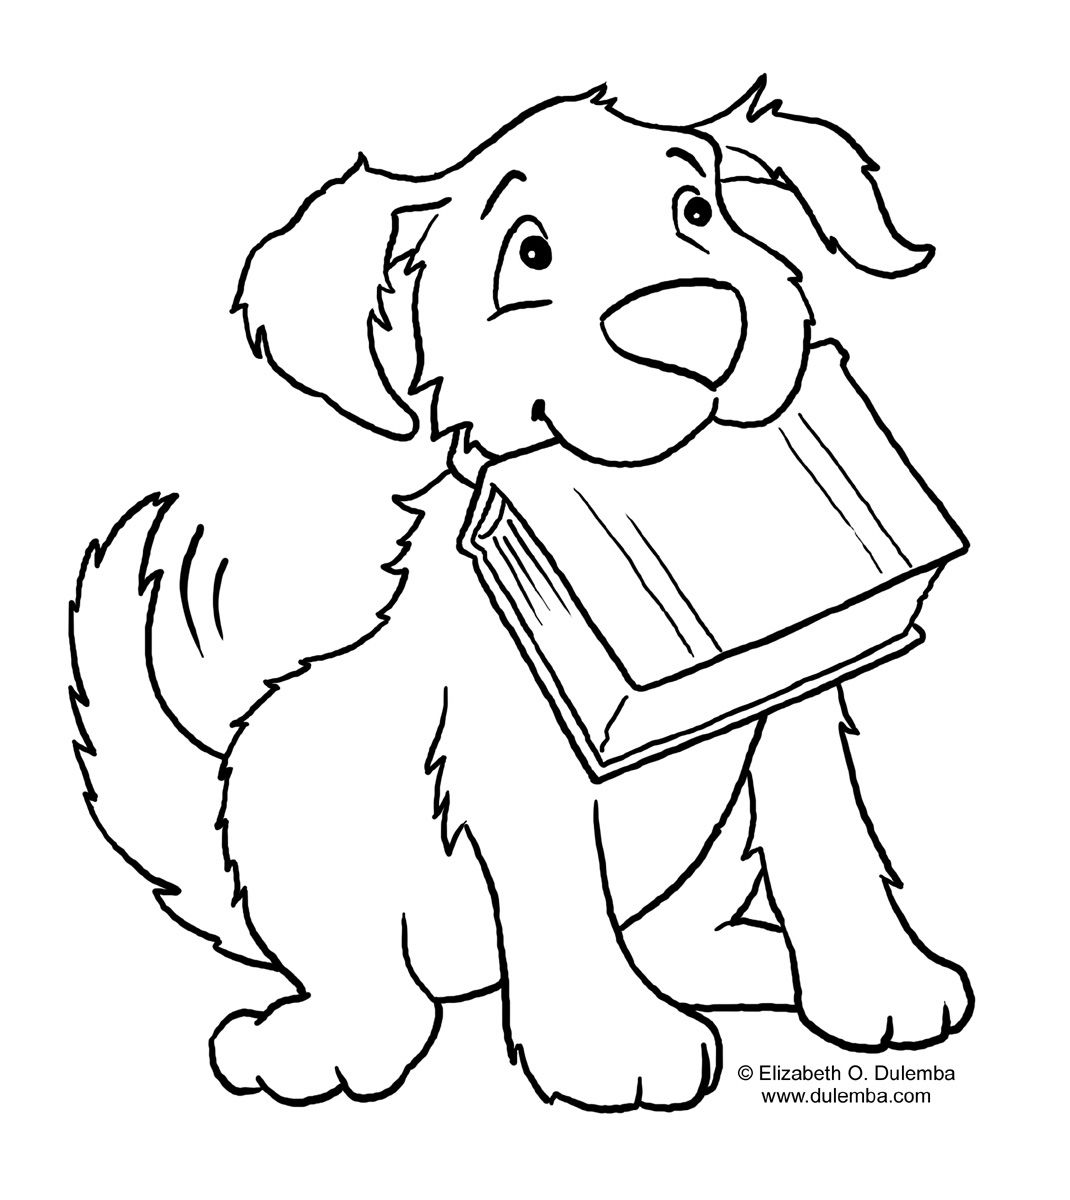 Dogs Printable Coloring Pages For Kids Find On Coloring